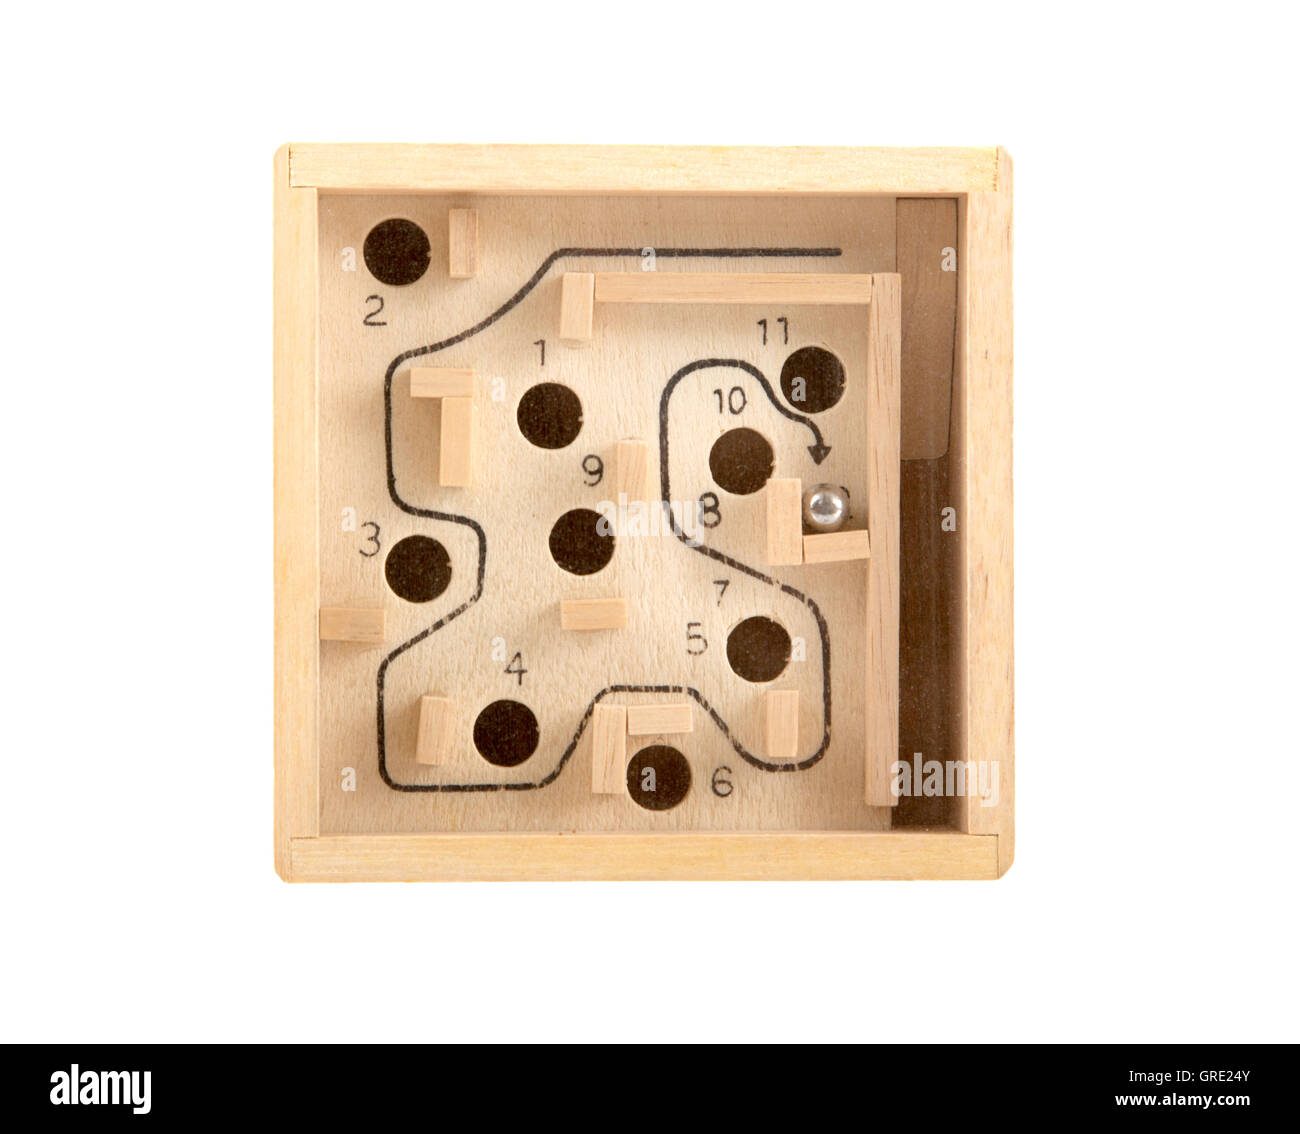 Steel ball in the wooden maze - Stock Image